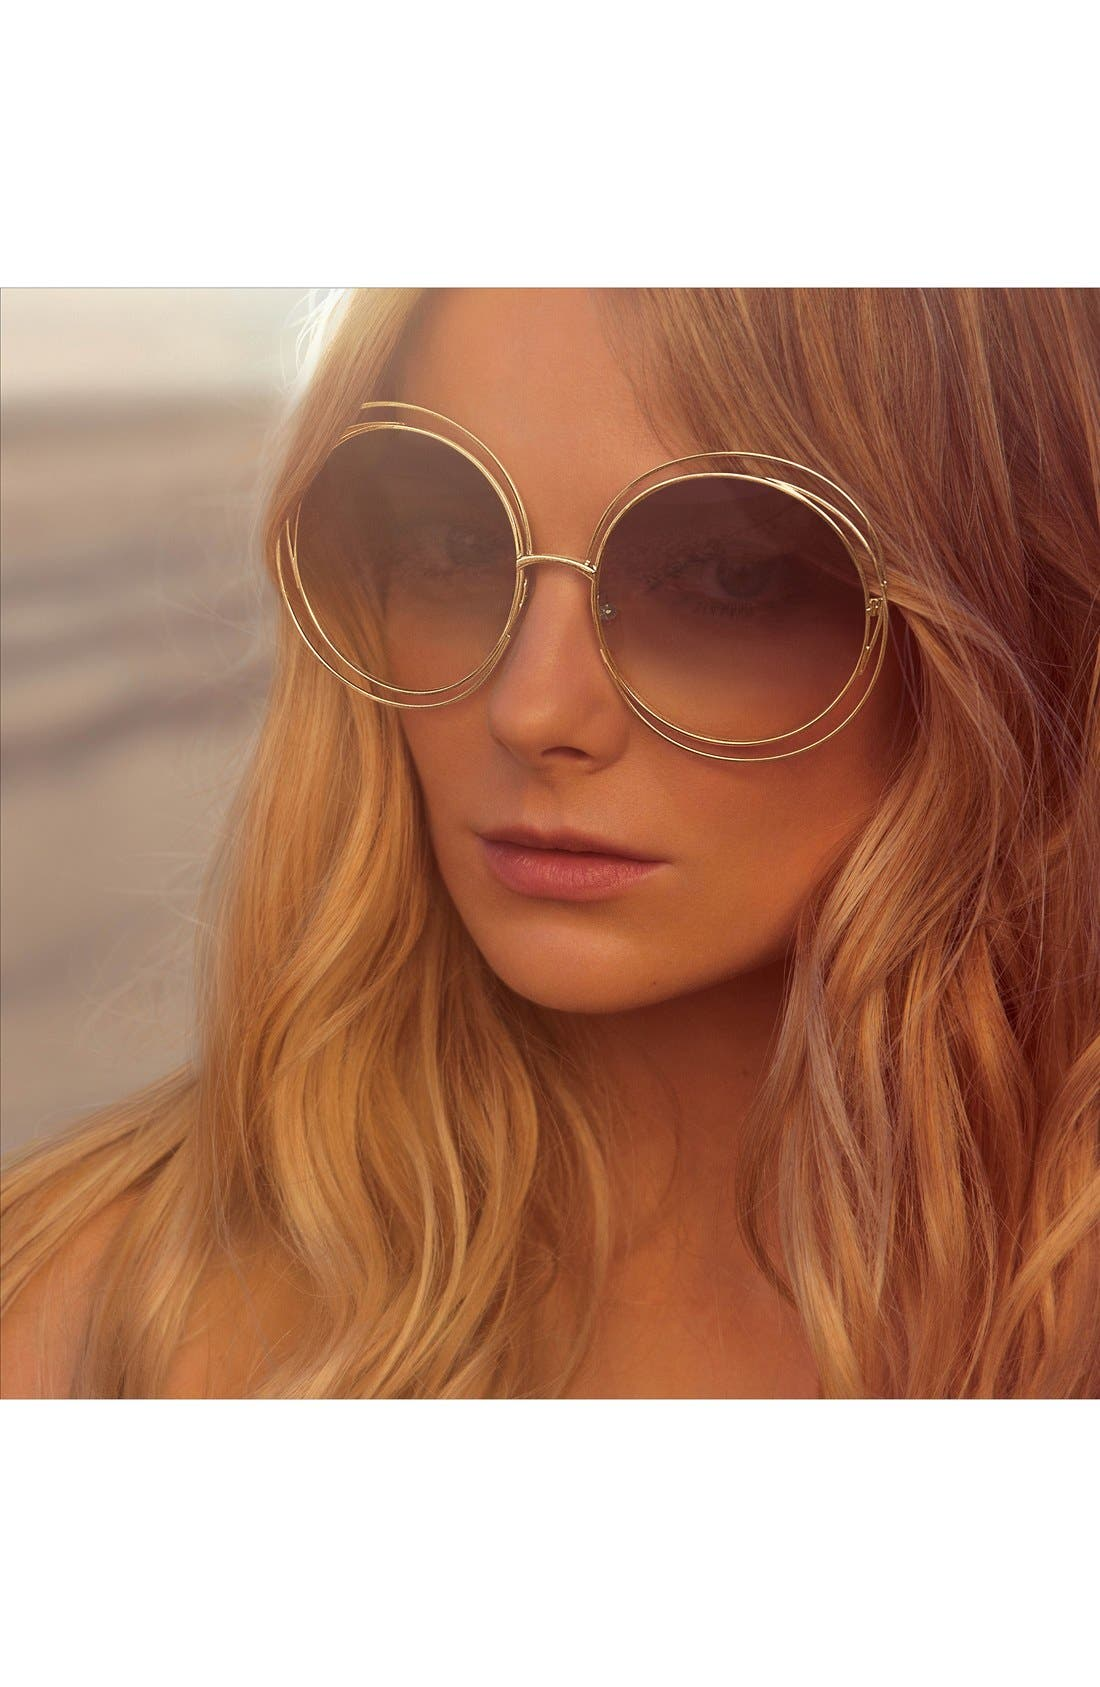 62mm Oversize Sunglasses,                             Alternate thumbnail 3, color,                             GOLD/ TRANSPARENT PEACH